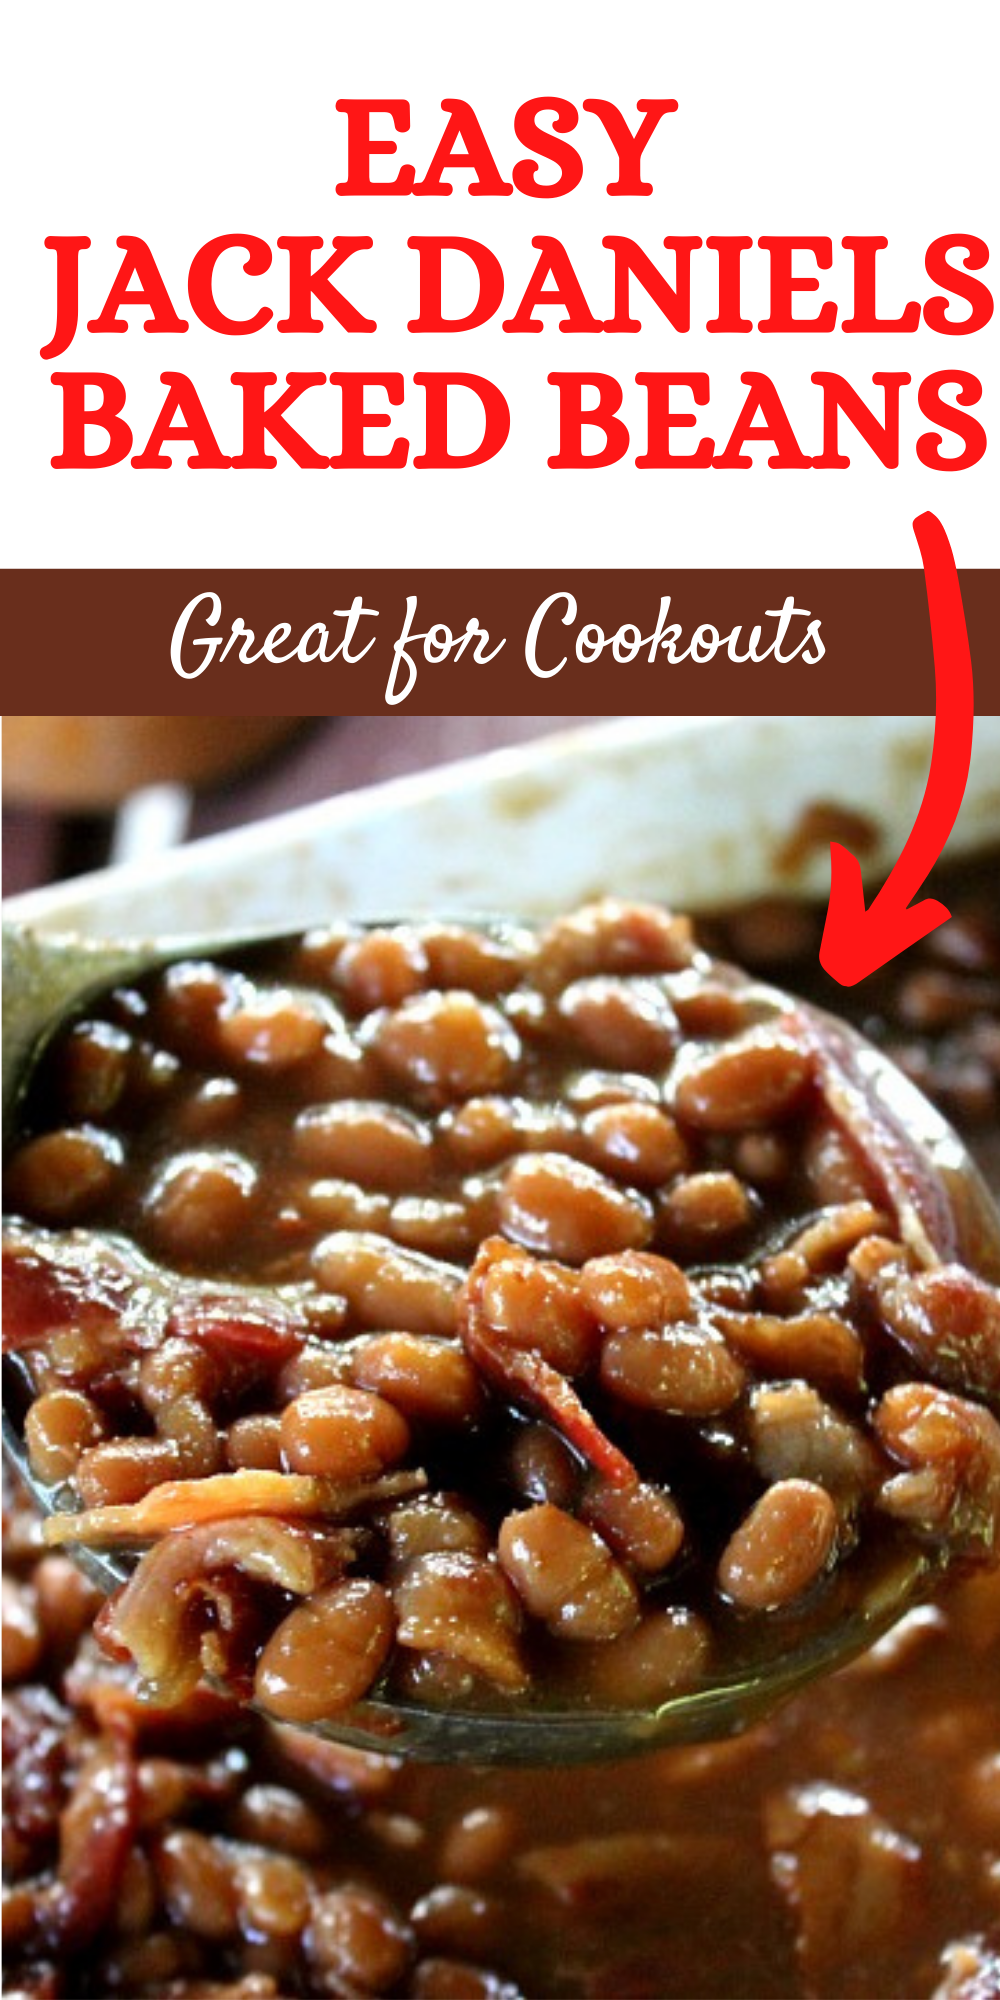 Super easy and tasty Jack Daniels Baked Beans are perfect for cookouts and holidays! Great as a side dish for burgers, hot dogs and anything else you whip up on the grill this summer!  via @bigbearswife